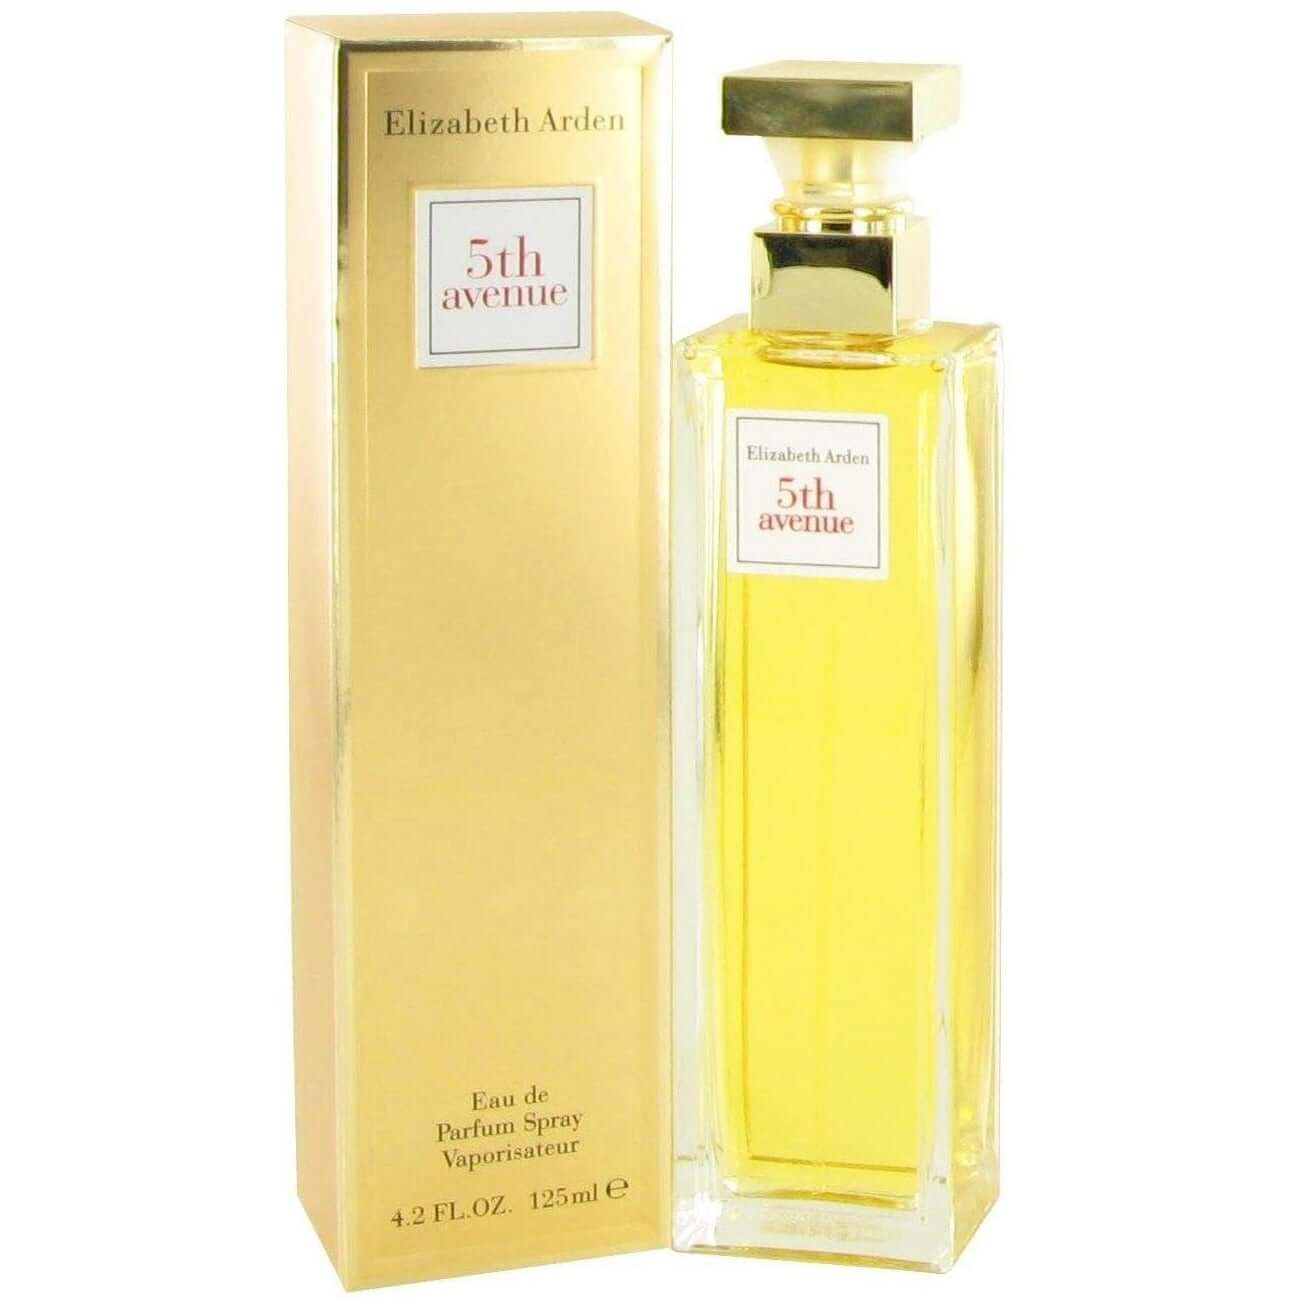 5th-avenue-by-elizabeth-arden-for-women-edp-4-2-oz-new-in-box-sealed